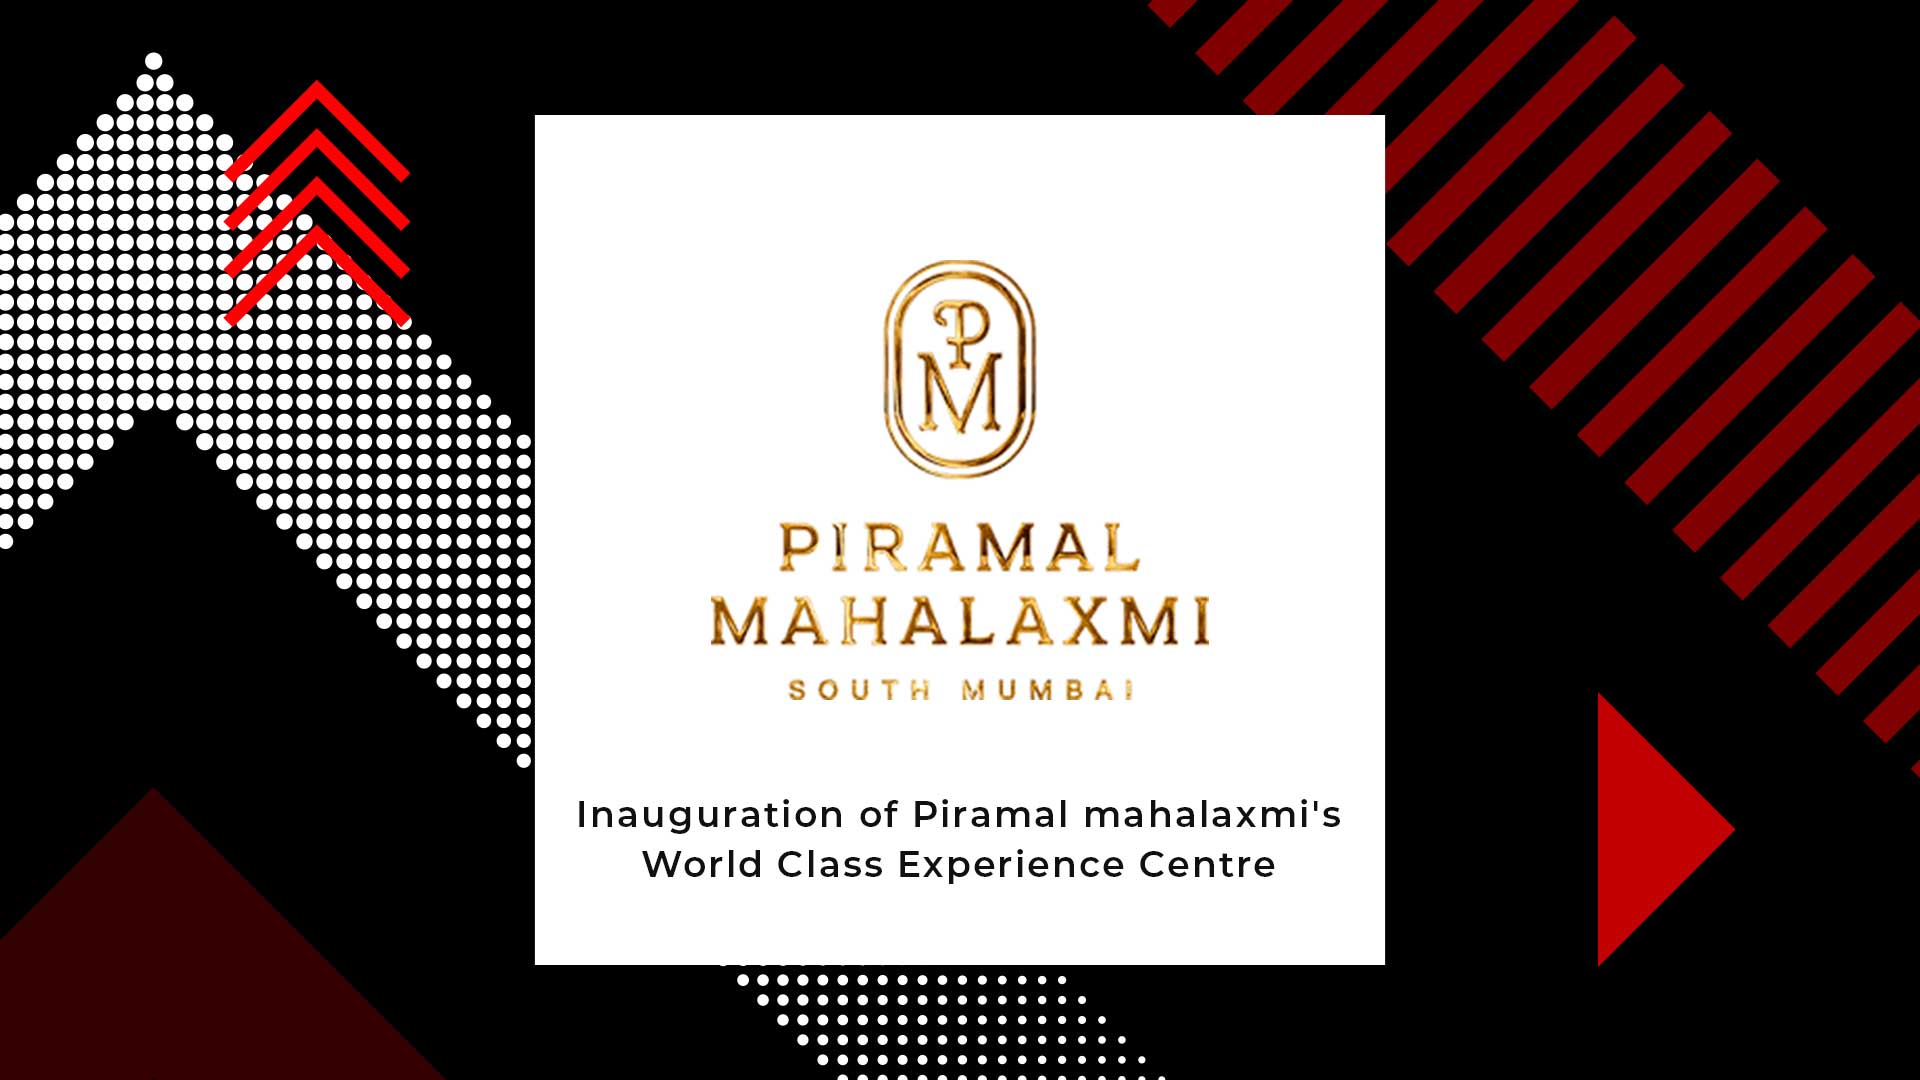 Piramal launches World Class Experience Centre at Piramal Mahalaxmi